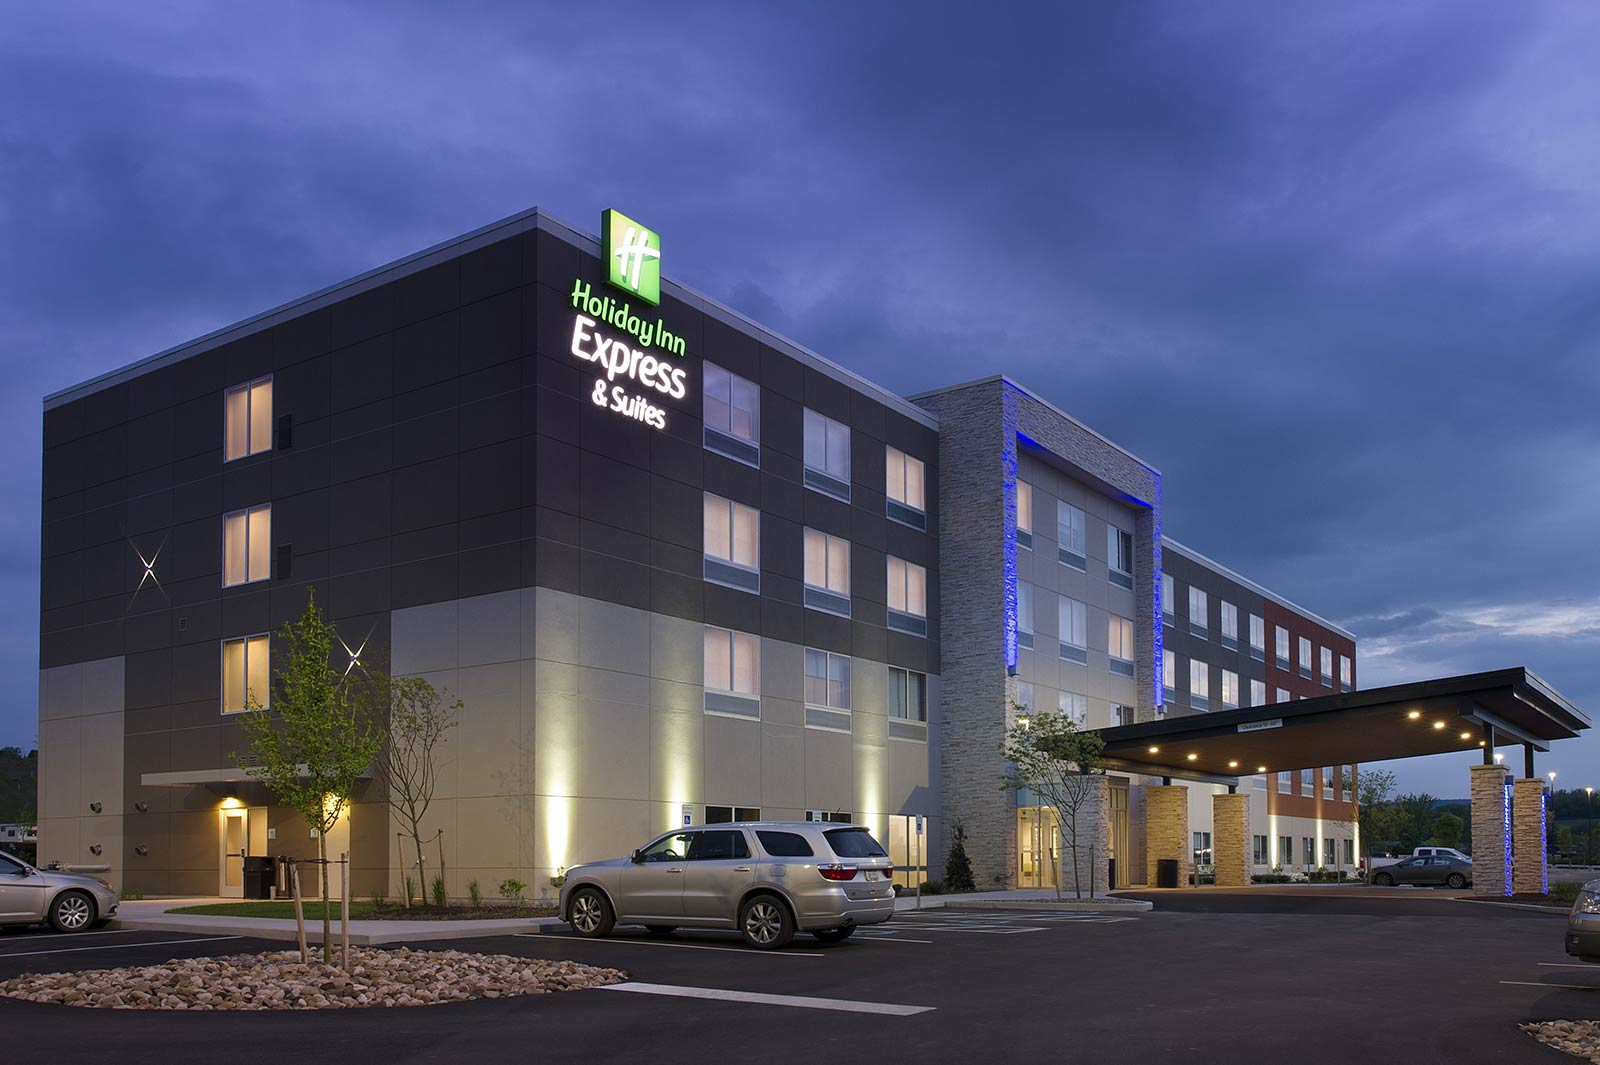 Holiday Inn Express Suites Sterling Hotel By Ihg